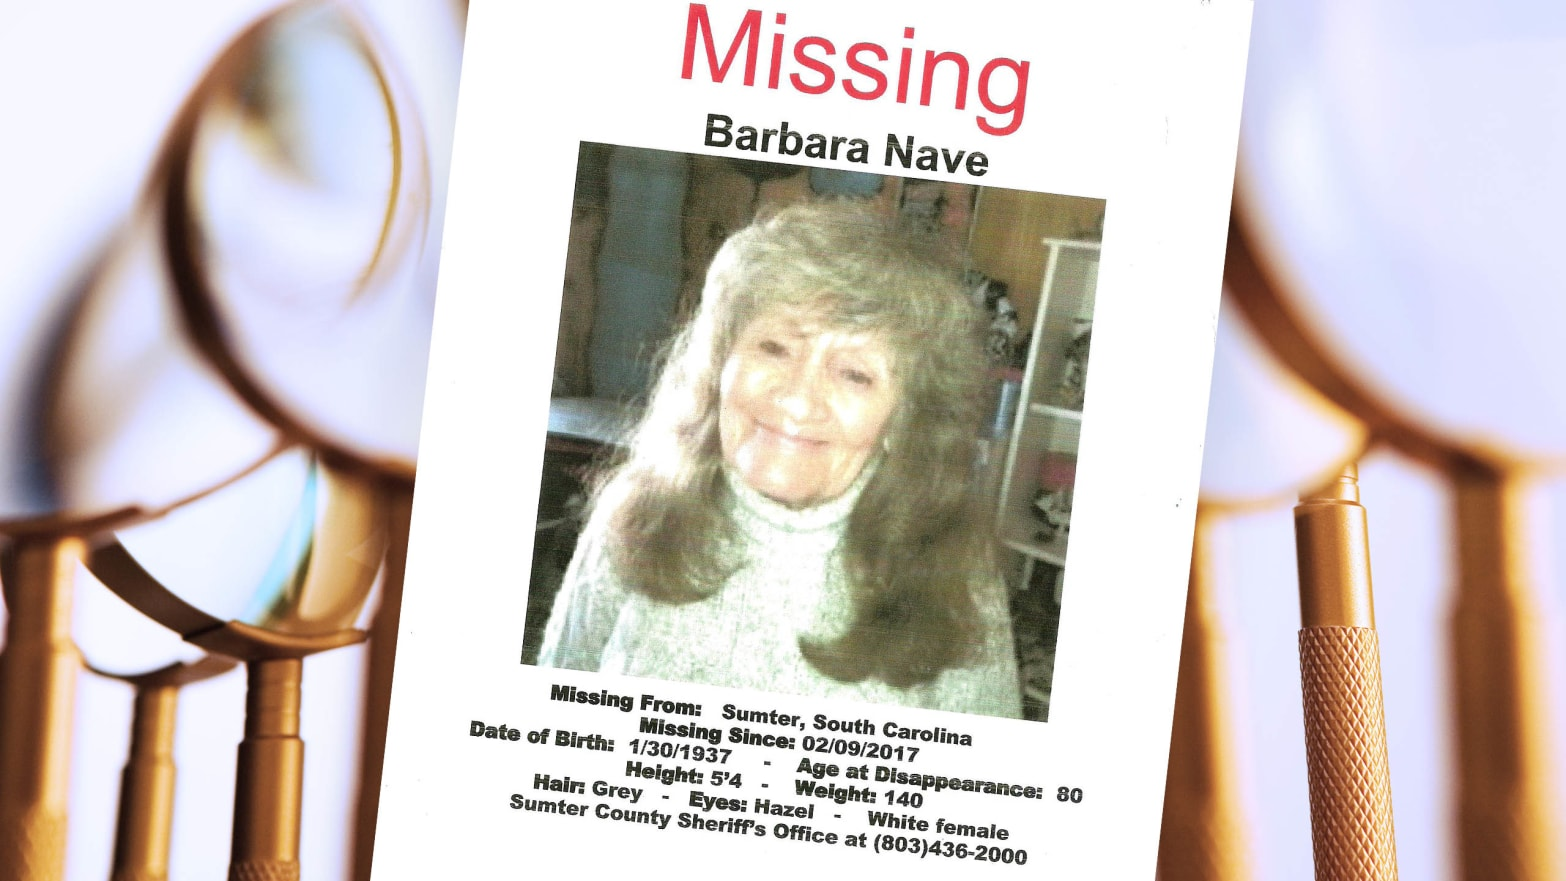 Barbara Nave Vanished Two Years Ago  This Golden-Ager Detective Club